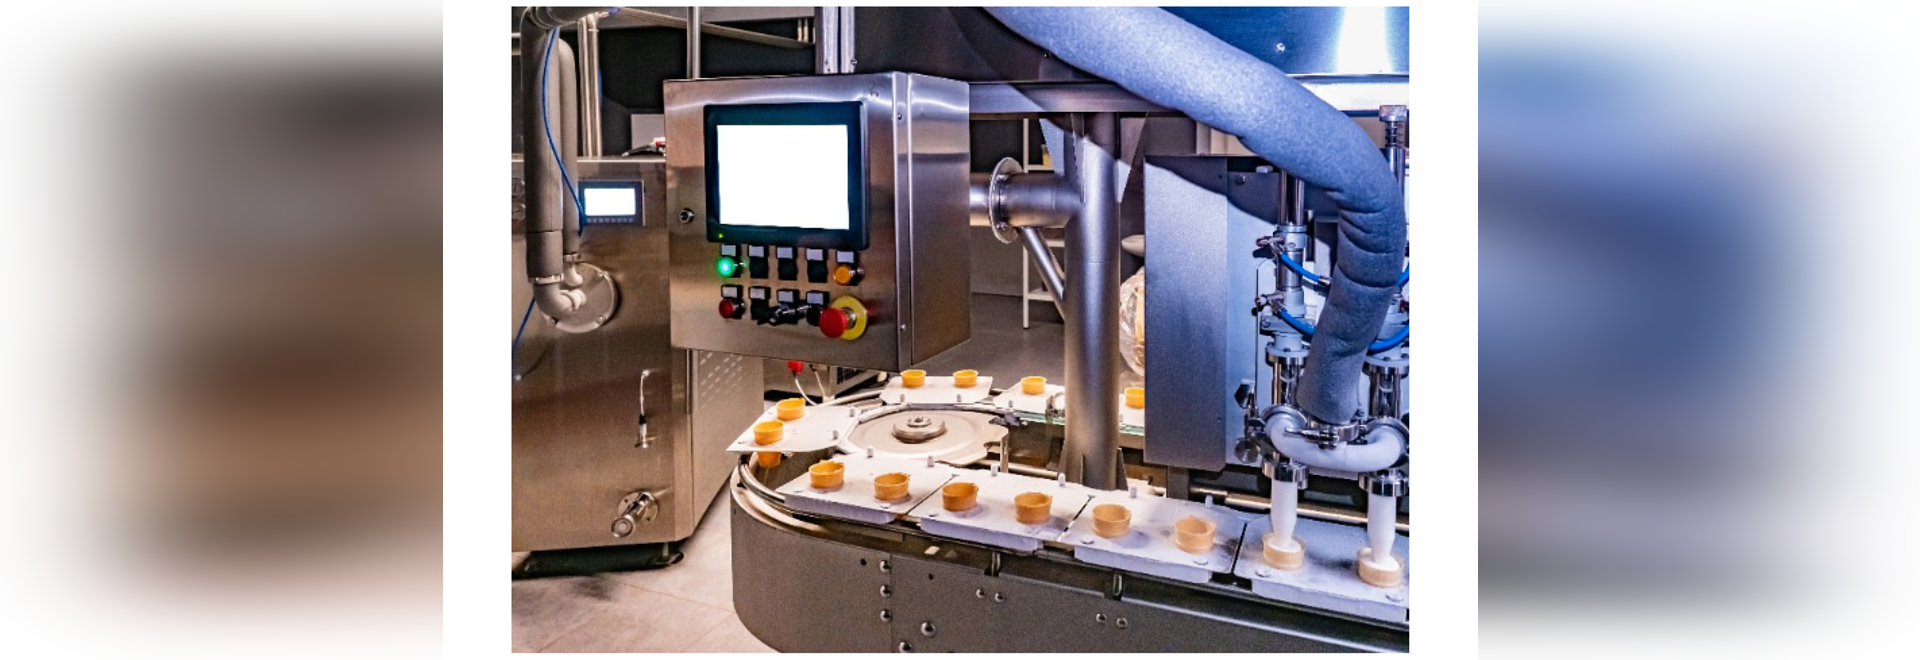 Benefits of Machine Vision Technology for Food Manufacturers